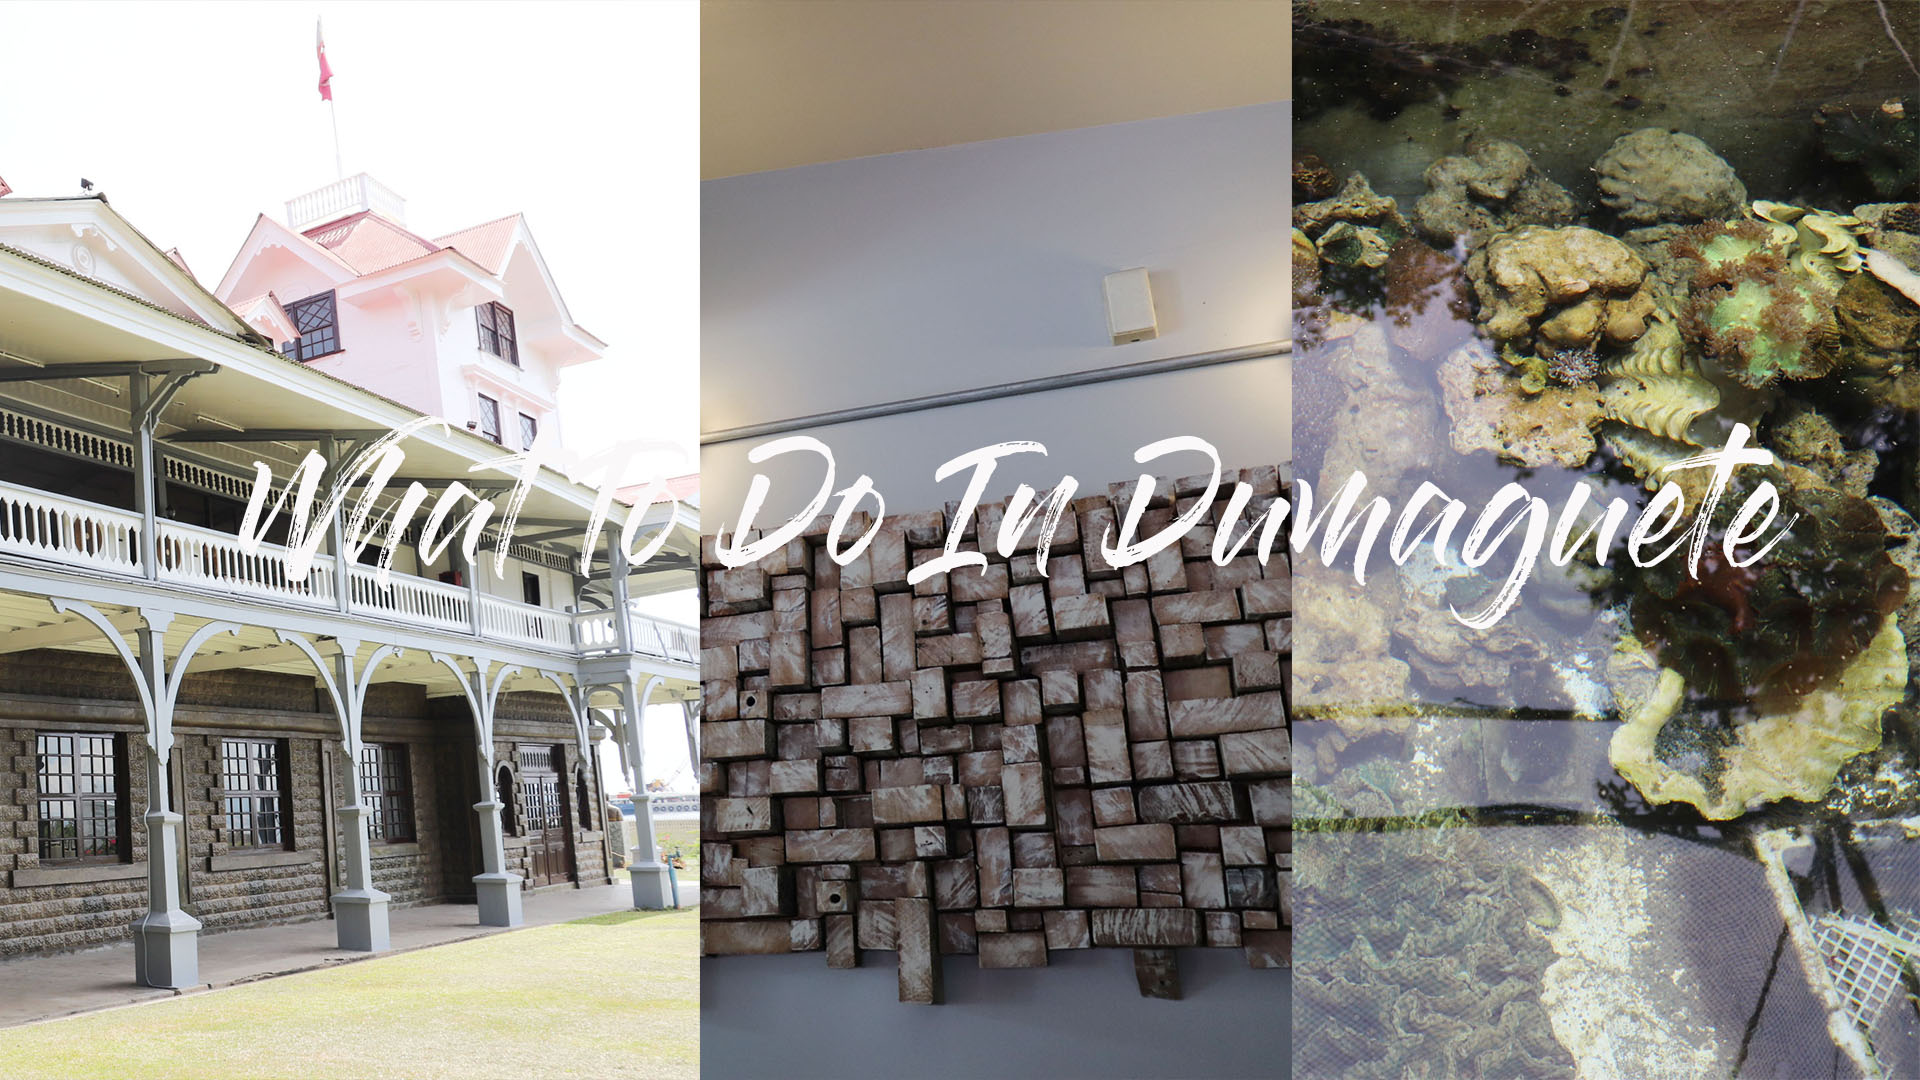 16 Hours In Dumaguete: Things To Do, Eat & See!